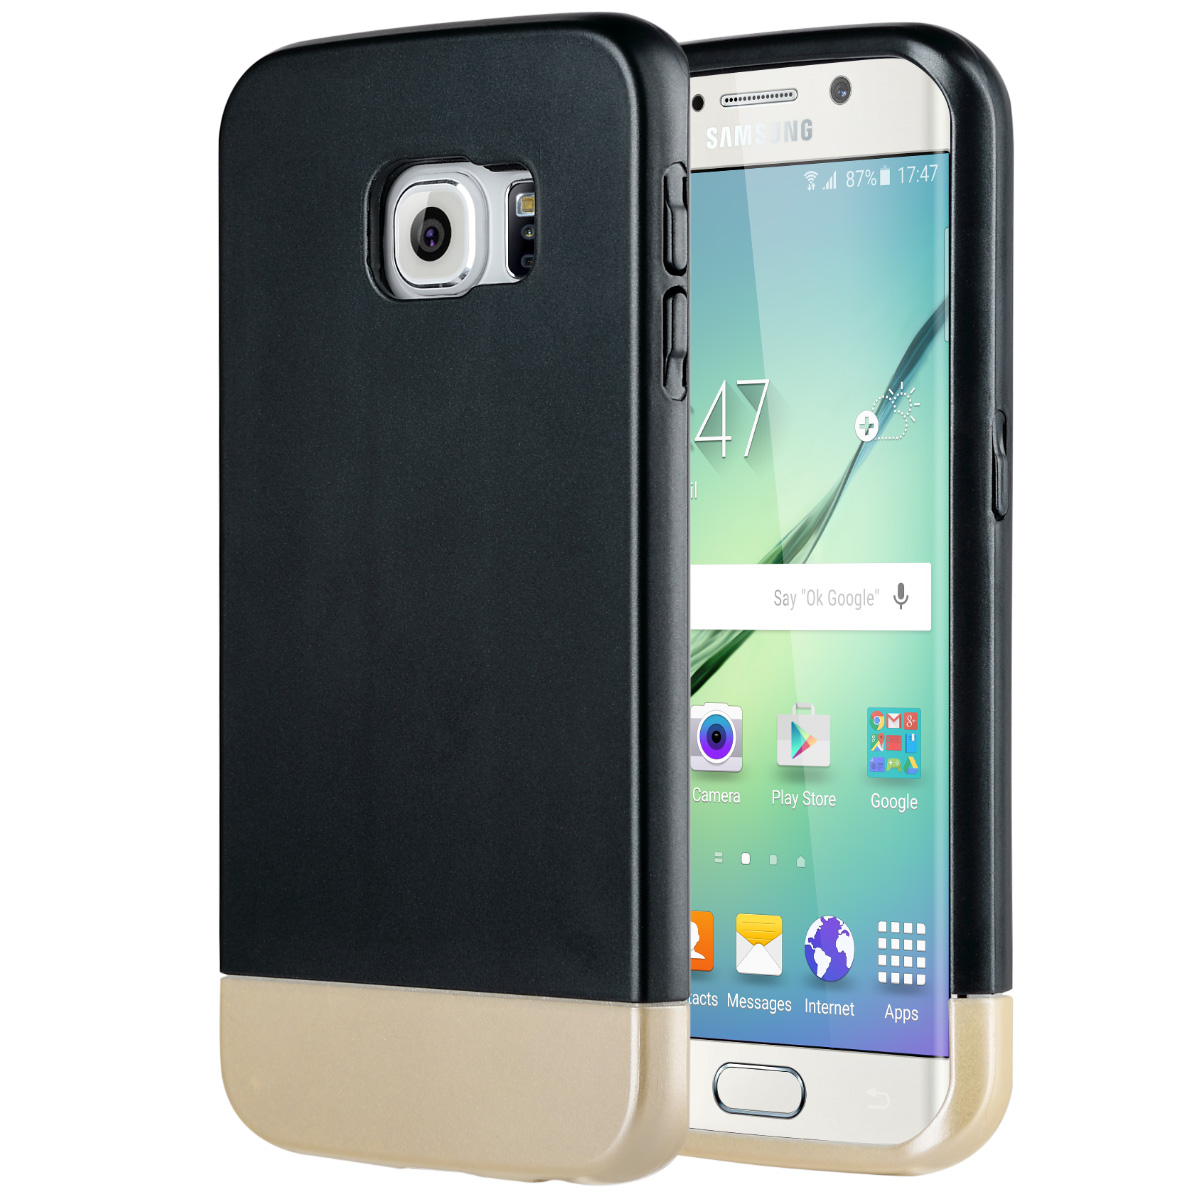 """ULAK Galaxy S6 Edge Case, Hybrid Case with Inner Soft TPU and Hard Outer Matte PC + Sliding Style Easy Installation for Samsung Galaxy S6 Edge (5.1"""" inch) 2015 Release"""